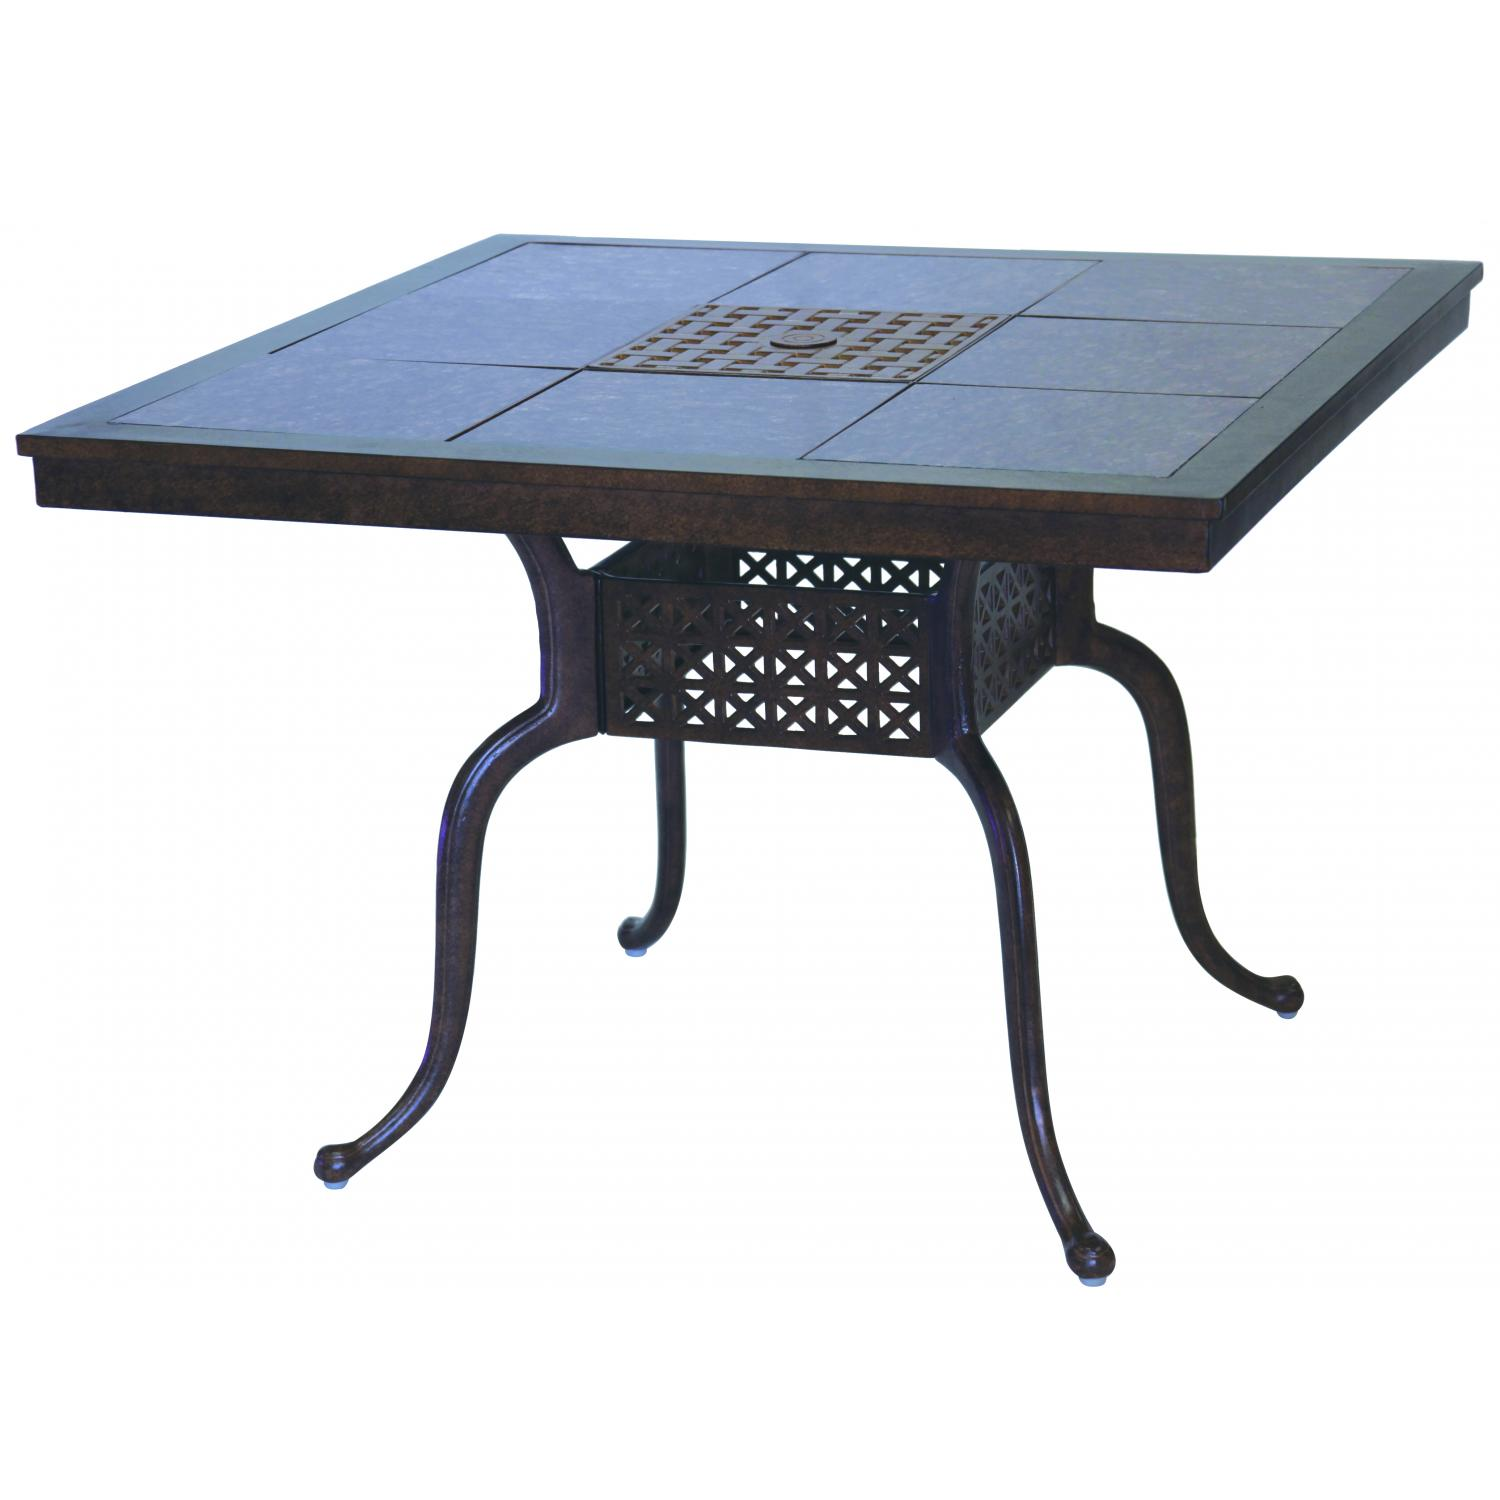 Darlee Series 77 Cast Aluminum Patio Dining Table With Granite Top - Mocha / Brown Granite Tile at Sears.com